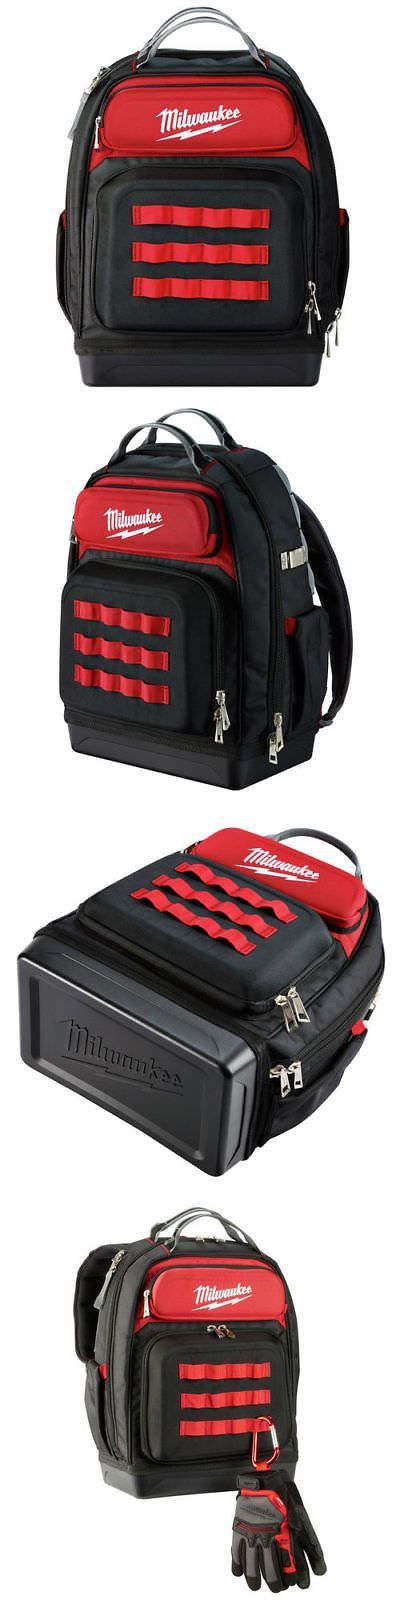 9cefa0da7a47 Tool Bags Belts and Pouches 42362  Milwaukee Ultimate Jobsite Backpack  48-22-8201 New -  BUY IT NOW ONLY   119 on eBay!